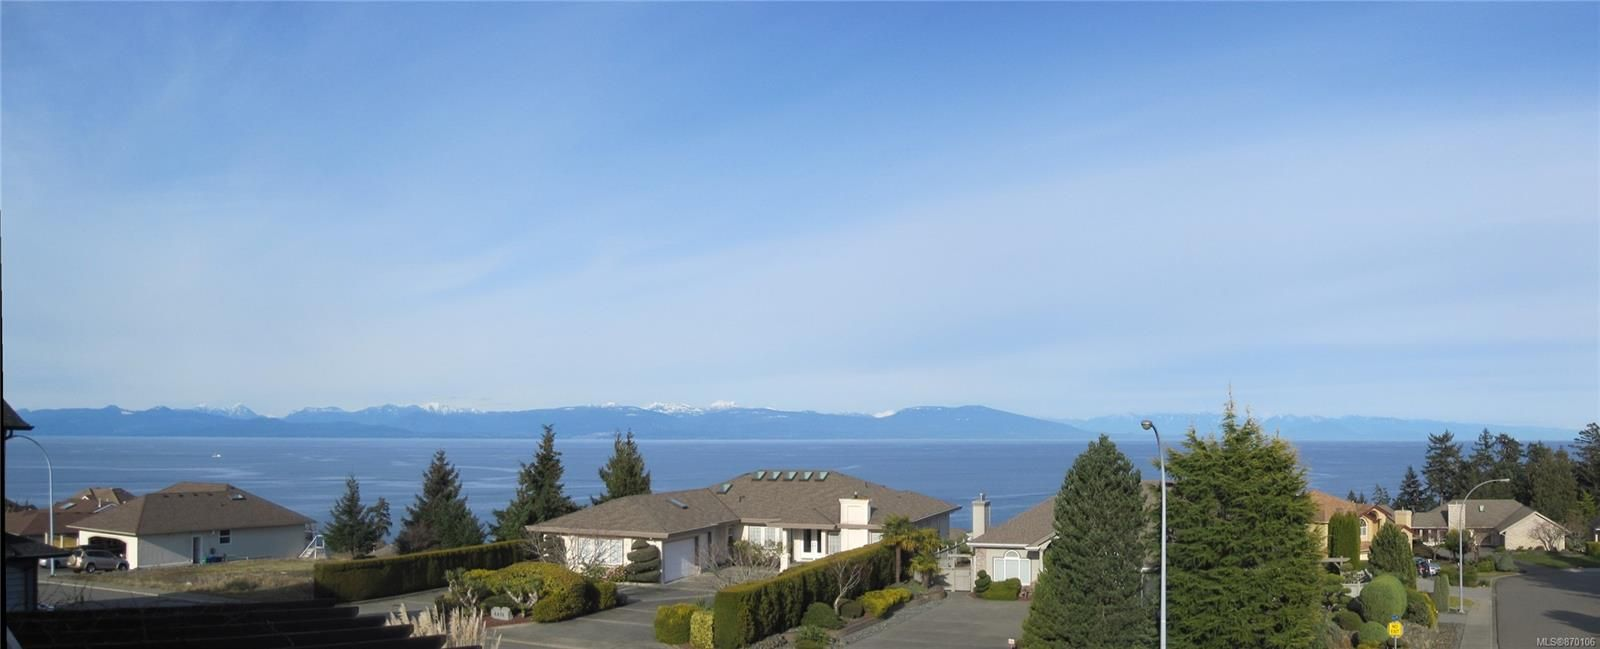 Main Photo: 4865 Finnerty Cres in : Na North Nanaimo House for sale (Nanaimo)  : MLS®# 870106